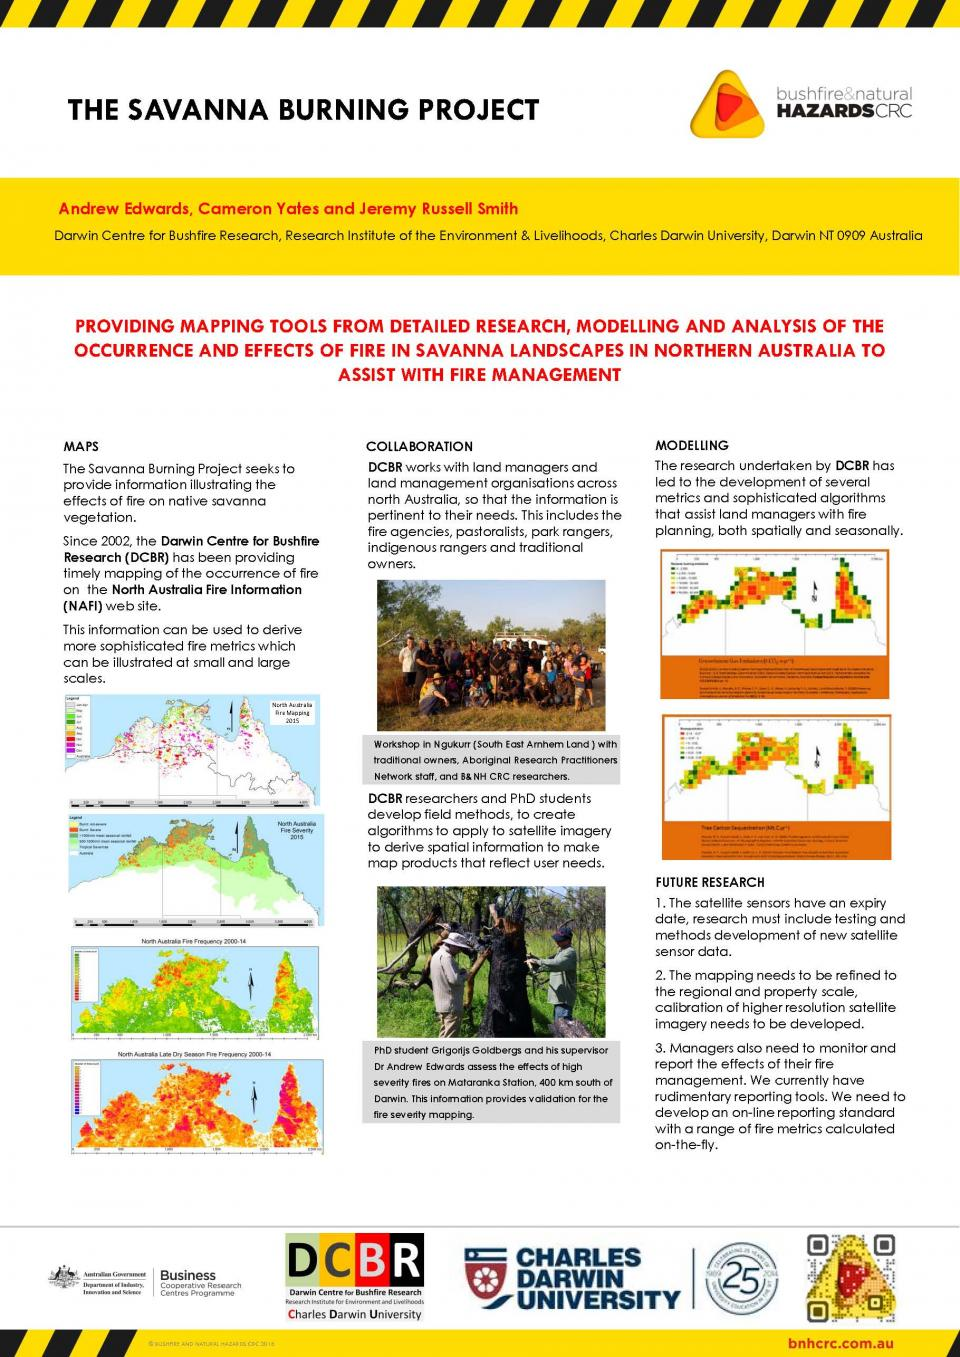 Andrew Edwards Conference Poster 2016